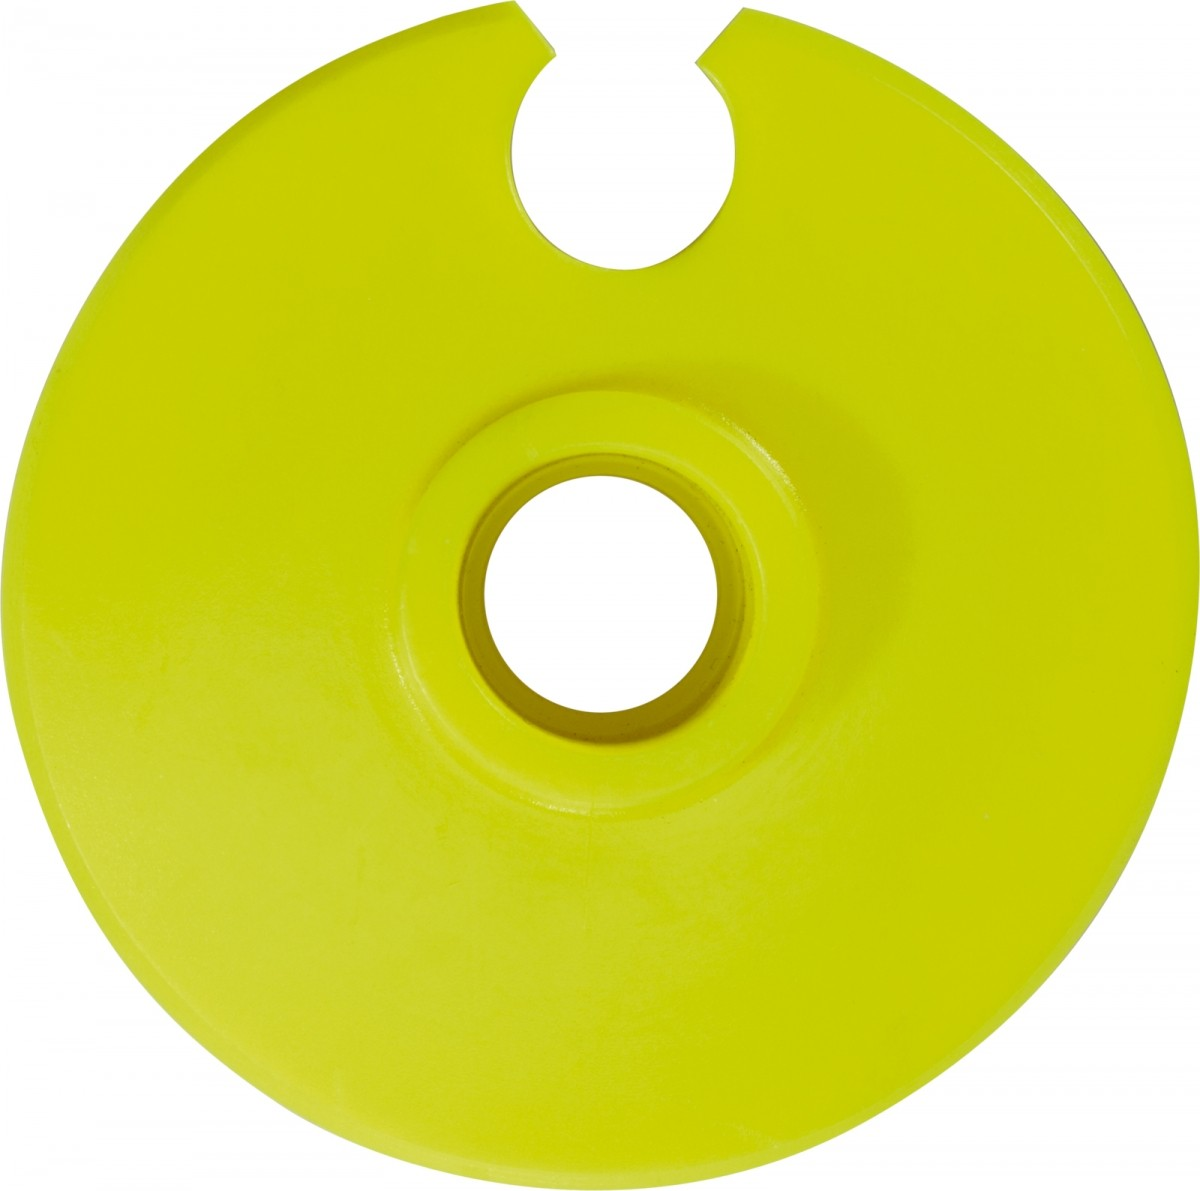 Leki snowflake, for SL poles 62mm - yellow